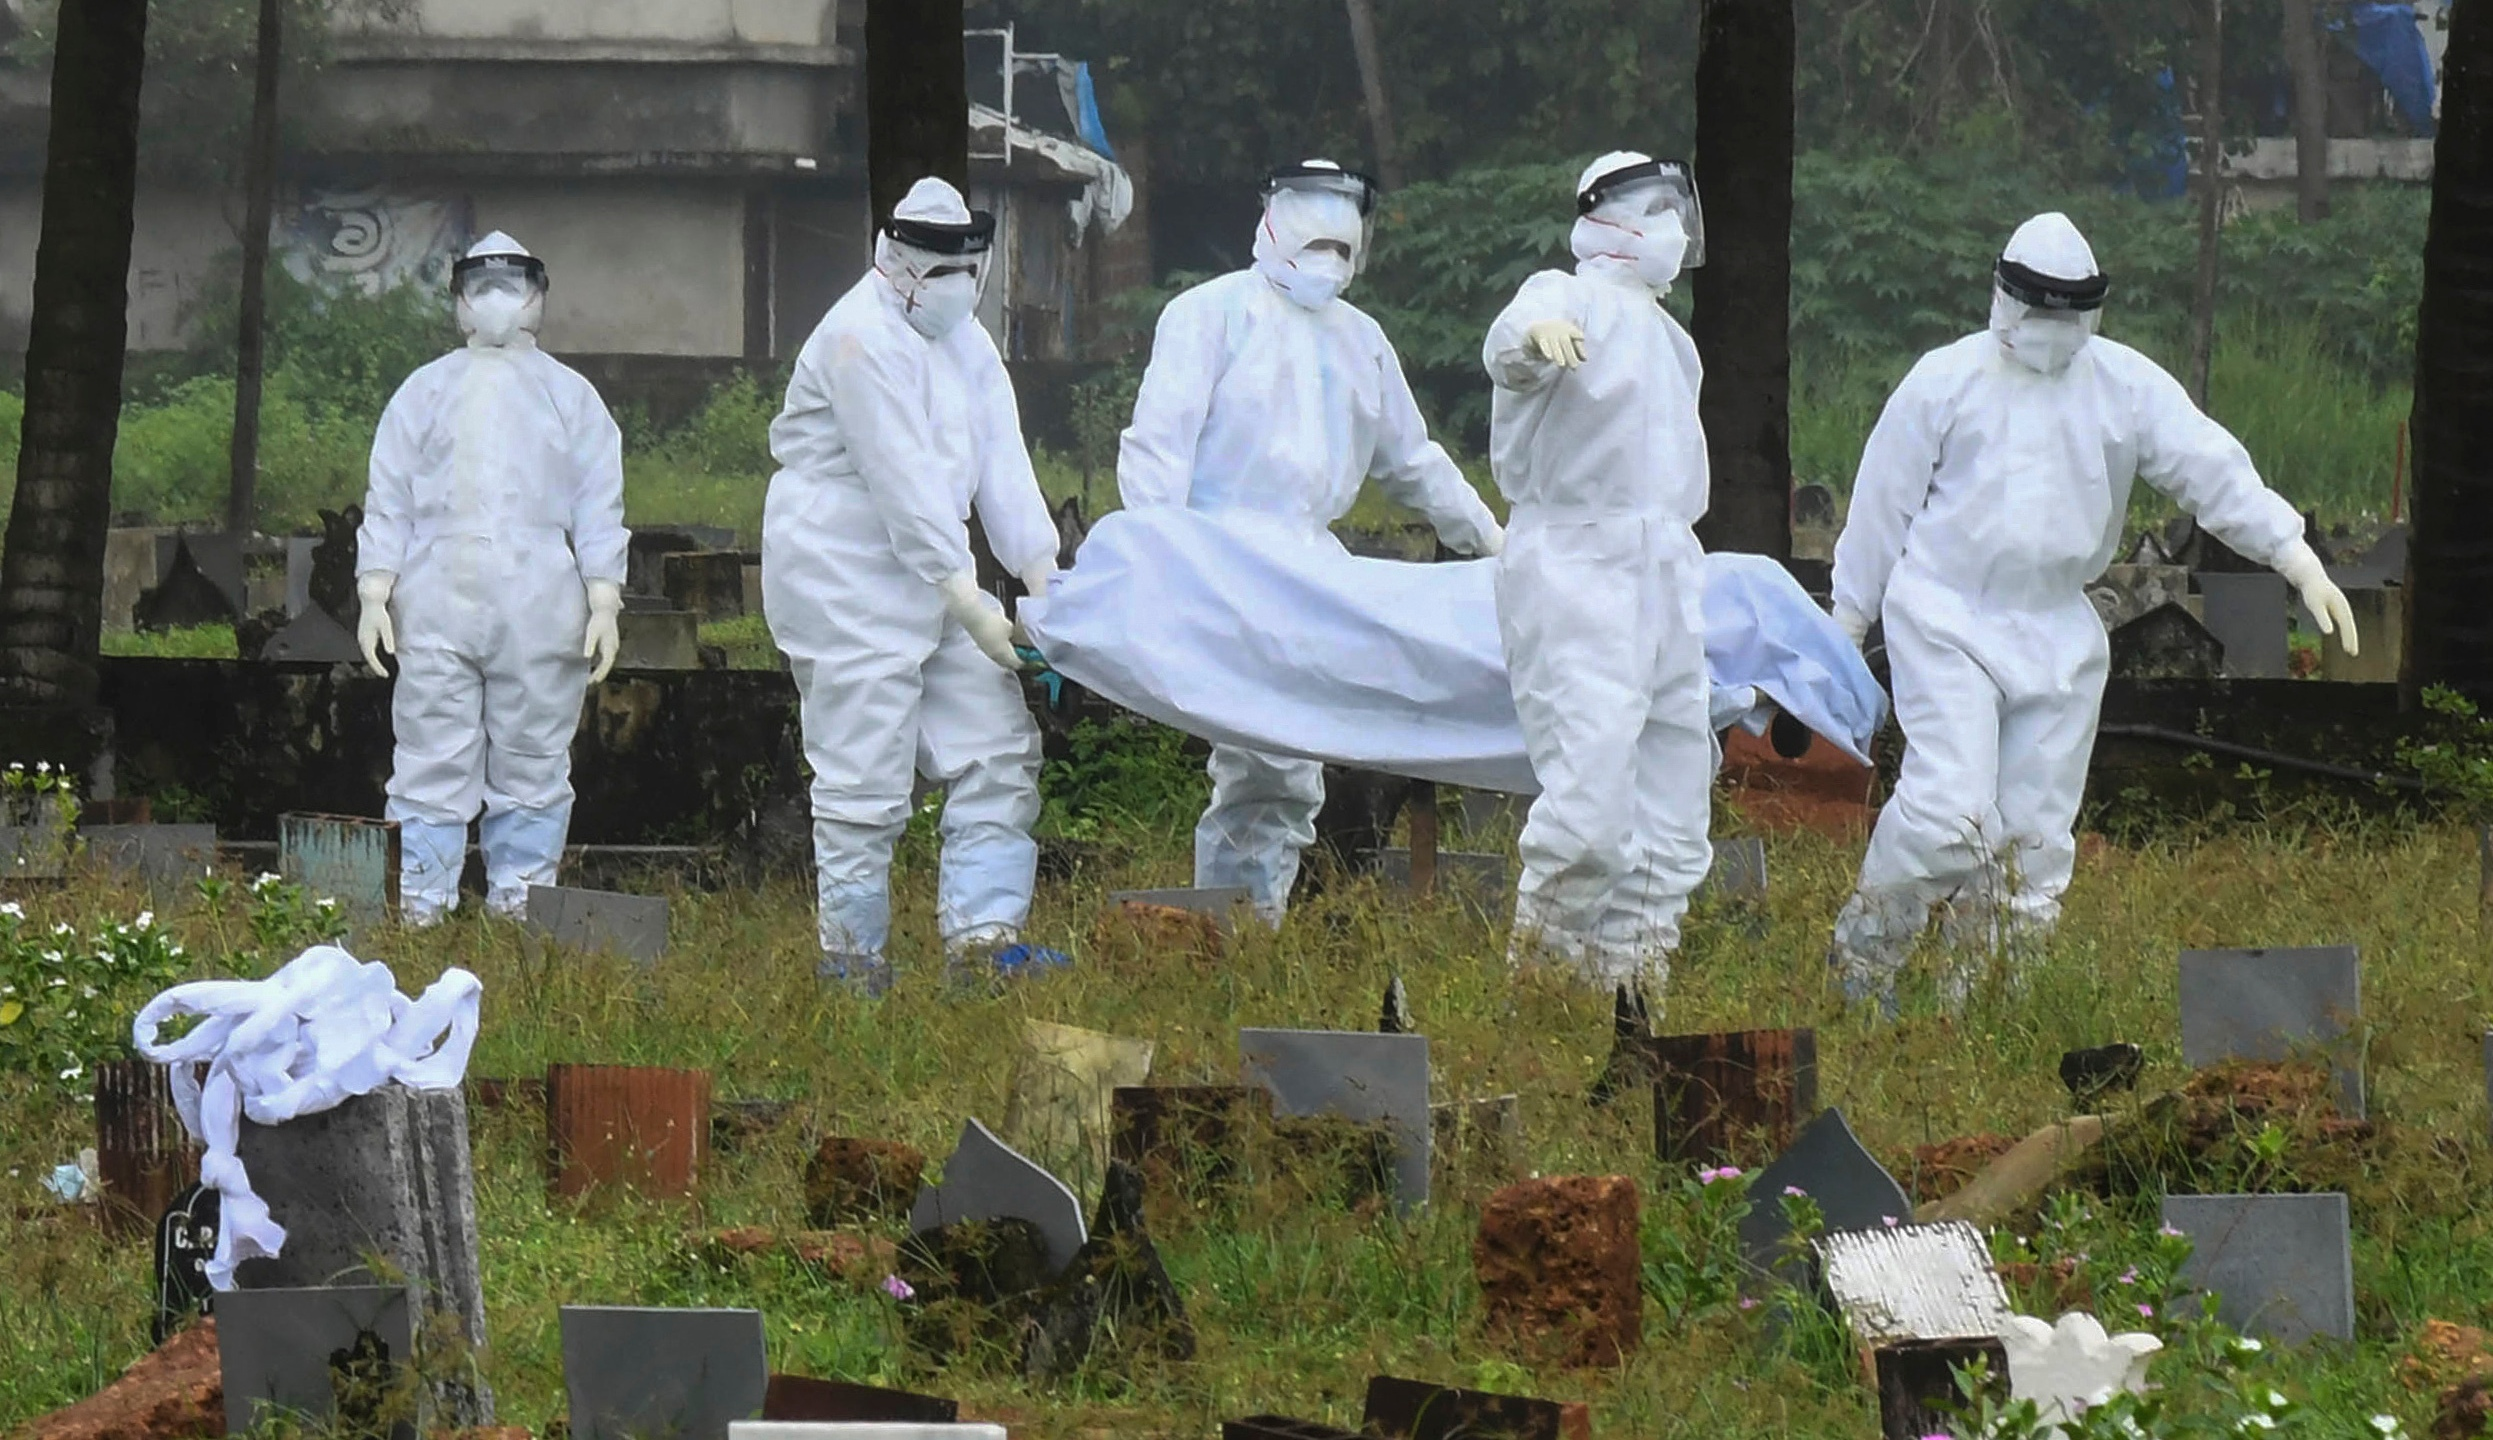 People in protective suits prepare to cremate the body of a 12-year-old boy died of the Nipah virus in Kozhikode, Kerala state, India, Sunday, Sept.5, 2021. The southern Indian state is quickly ramping up efforts to stop a potential outbreak of the deadly Nipah virus, even as it continues to battle the highest number of coronavirus cases in the country. (AP Photo/Shijith. K)